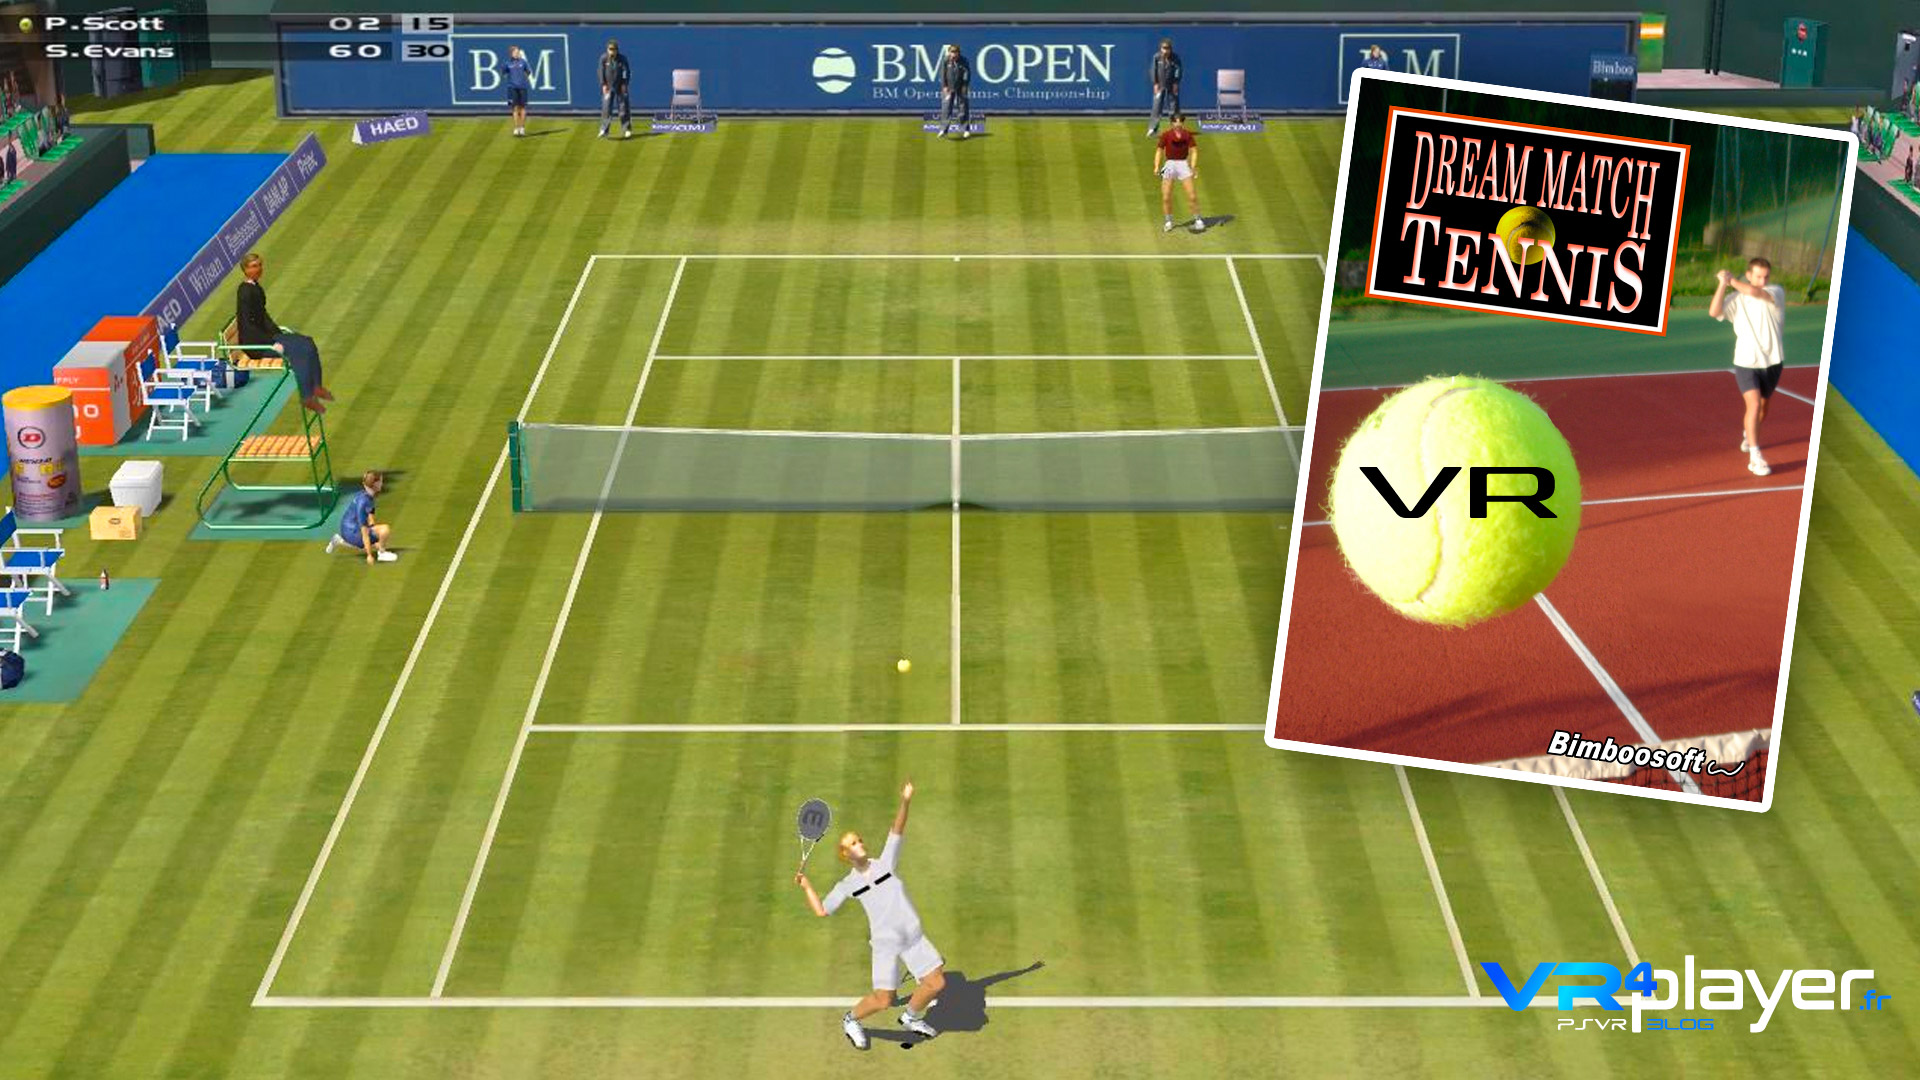 Dream Match Tennis VR VR4Player